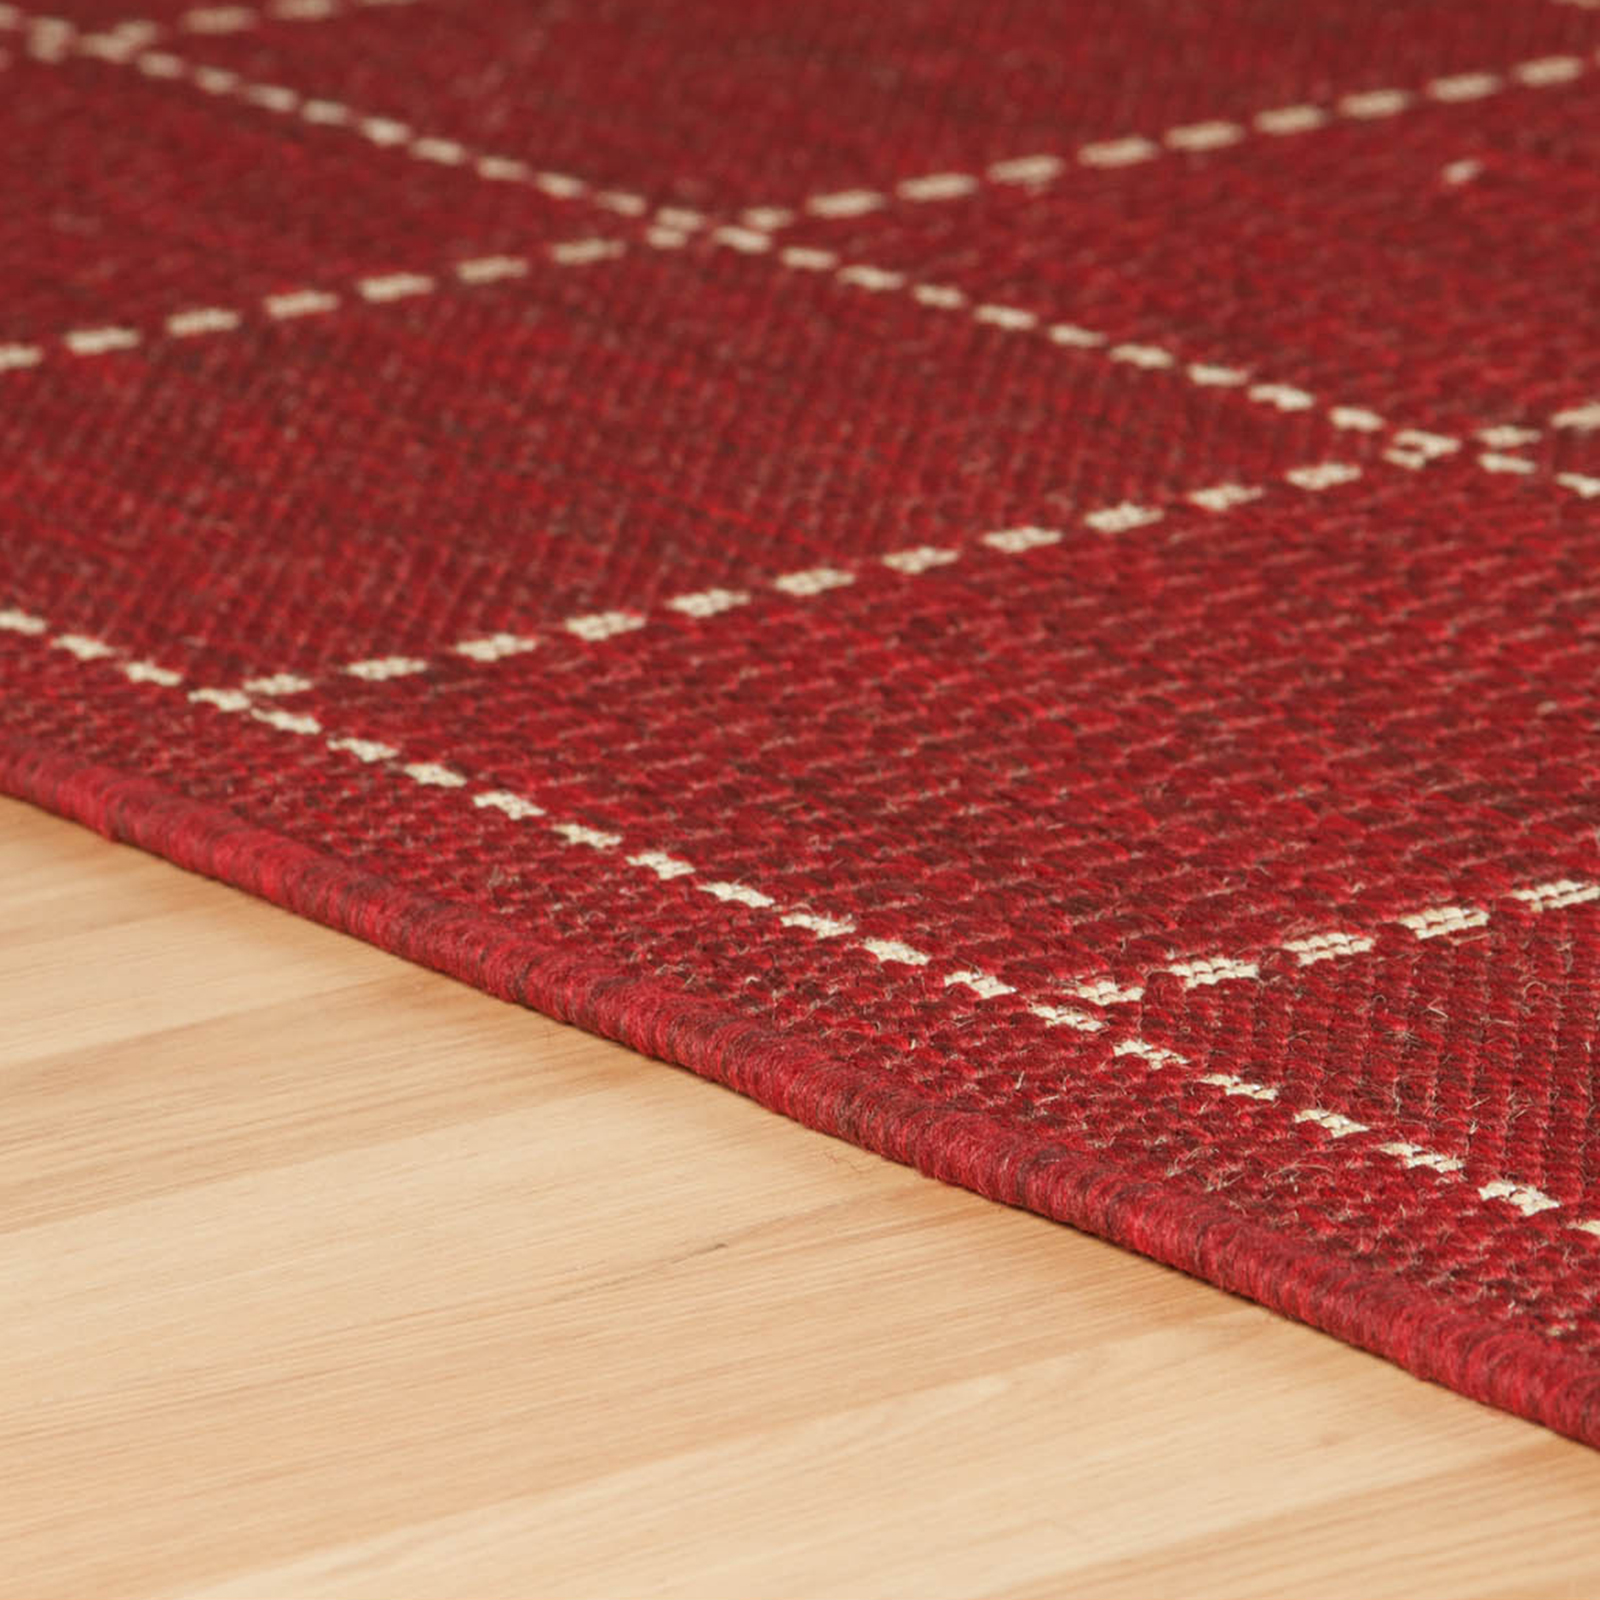 Checked-Flatweave-Red-Detail-(1).jpg